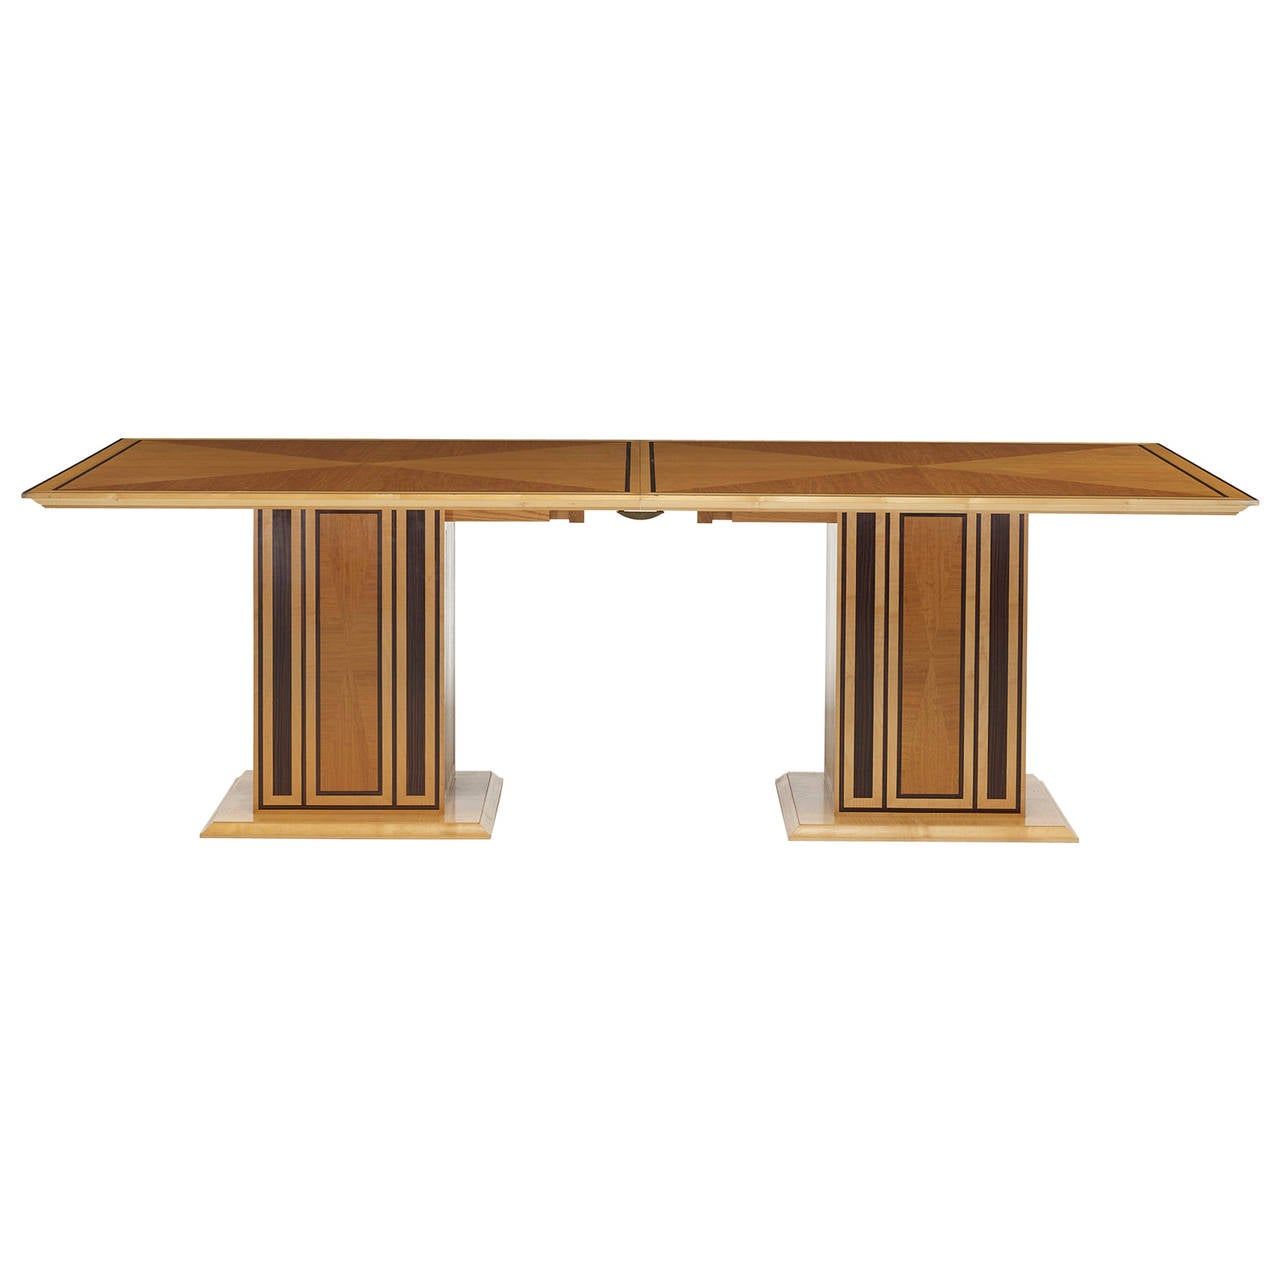 Dining table by david linley for linley for sale at 1stdibs for Dining room tables 120 inches